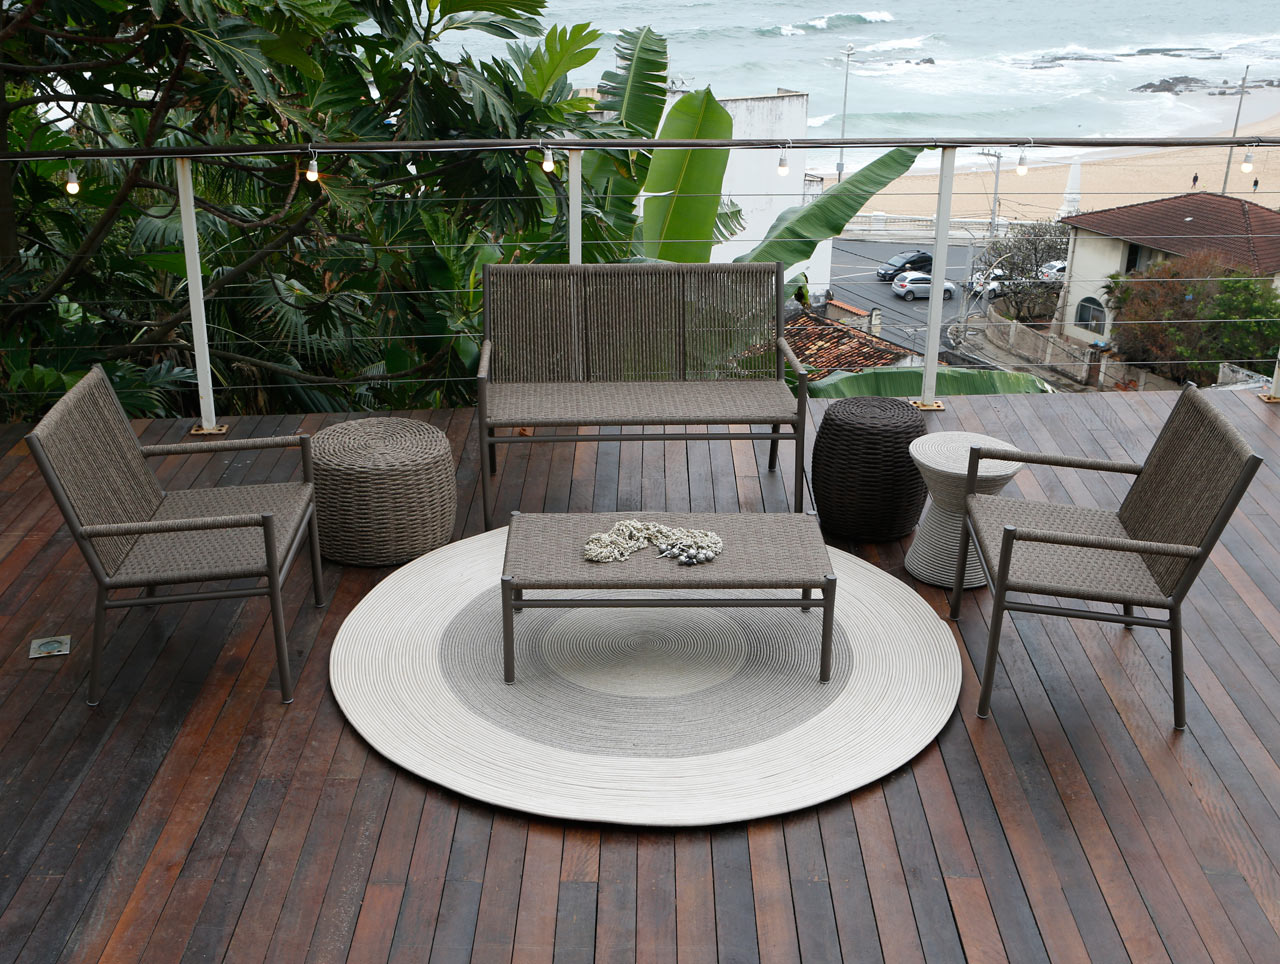 Tidelli's Rug Simulator Allows You to Create Your Own Custom Outdoor Rug